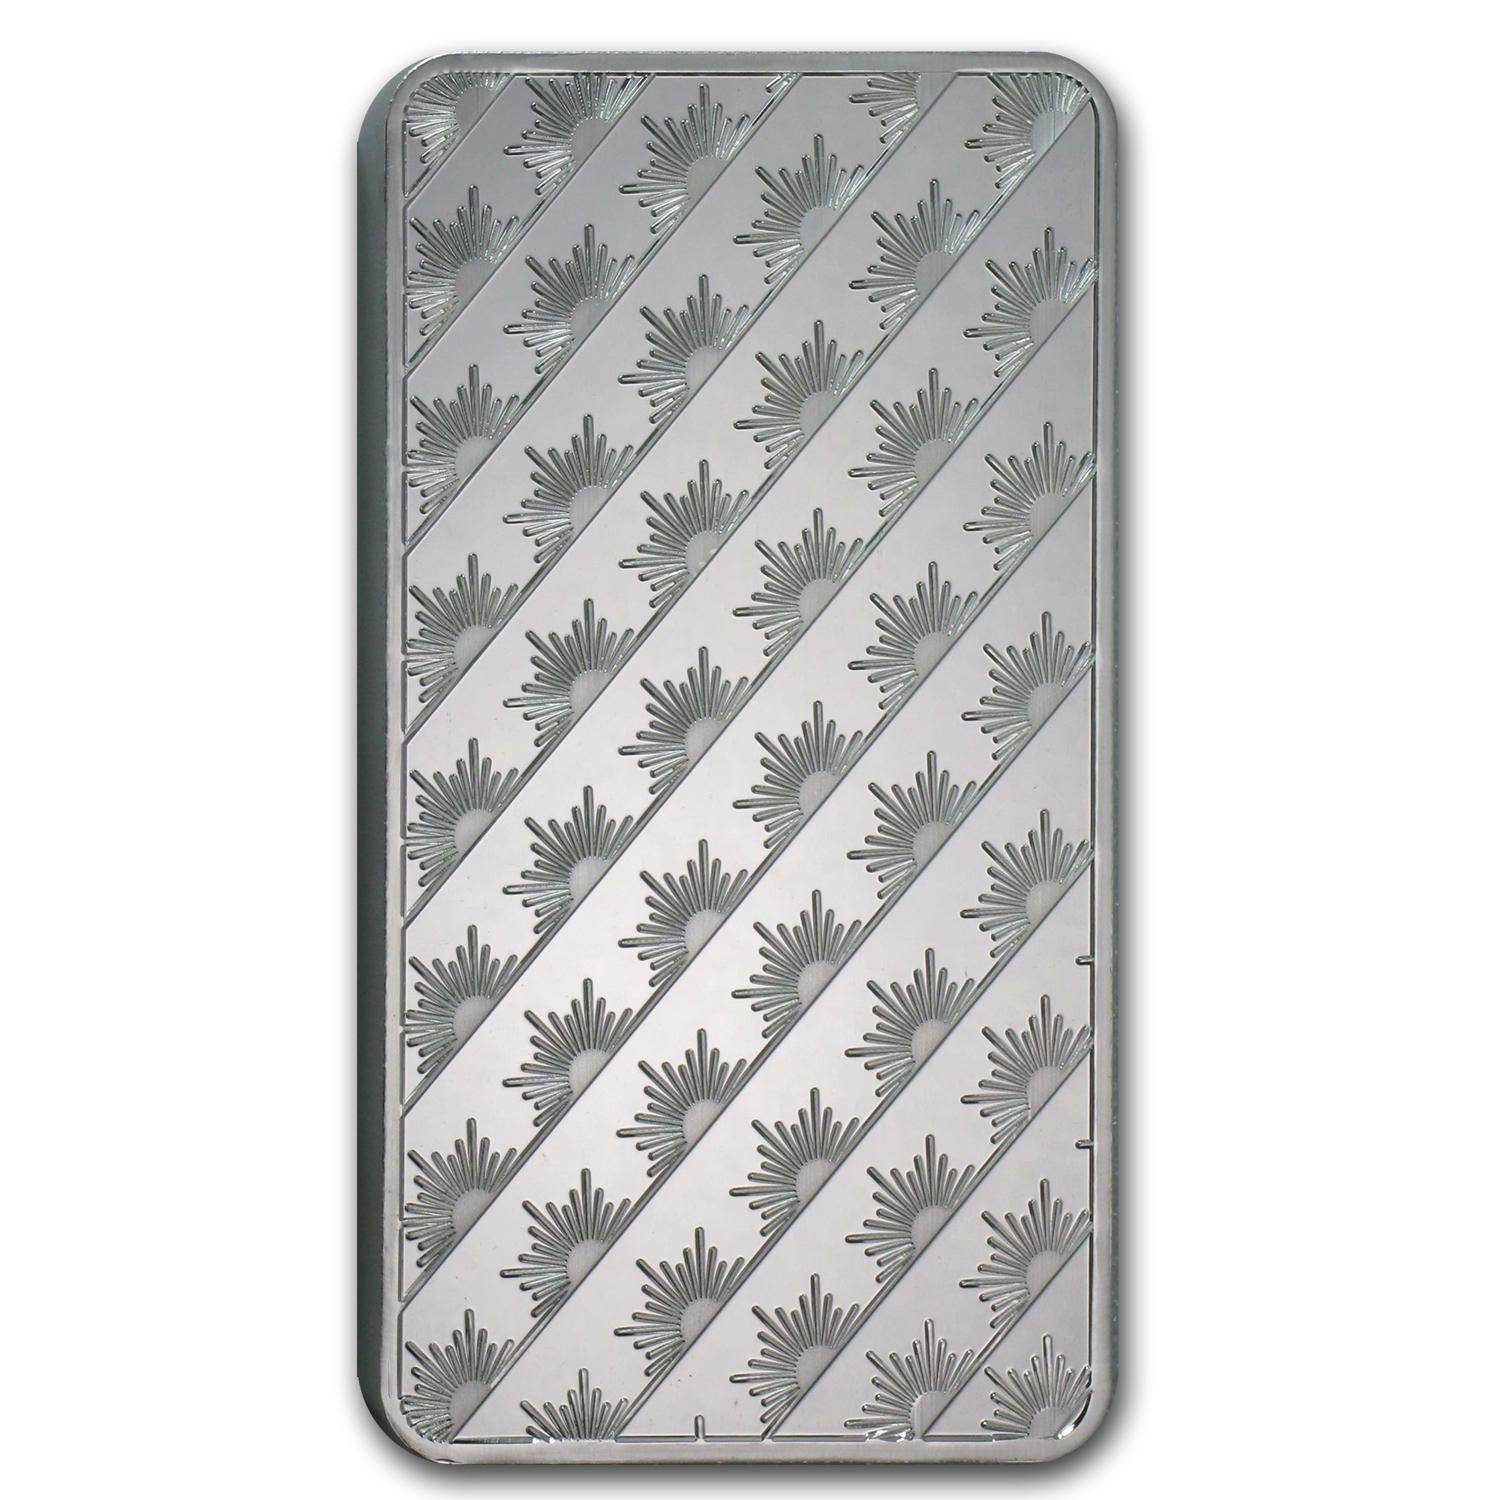 10 oz Silver Bars - Sunshine (Original)